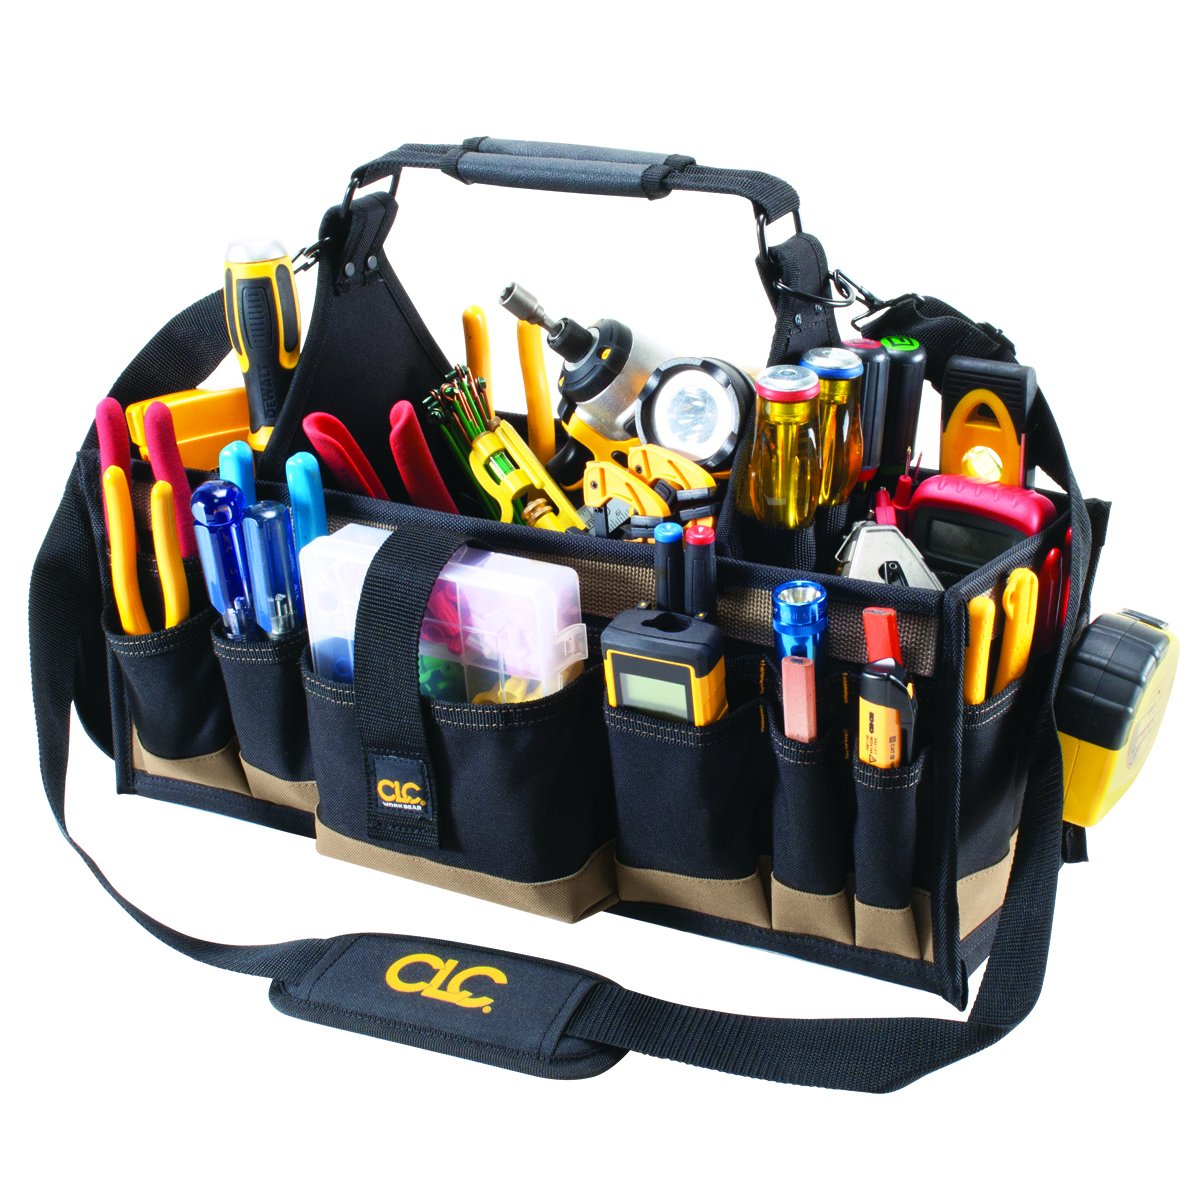 CLC Custom Leathercraft 1530 Electrical and Maintenance Tool Carrier, 43 Pocket by Custom Leathercraft